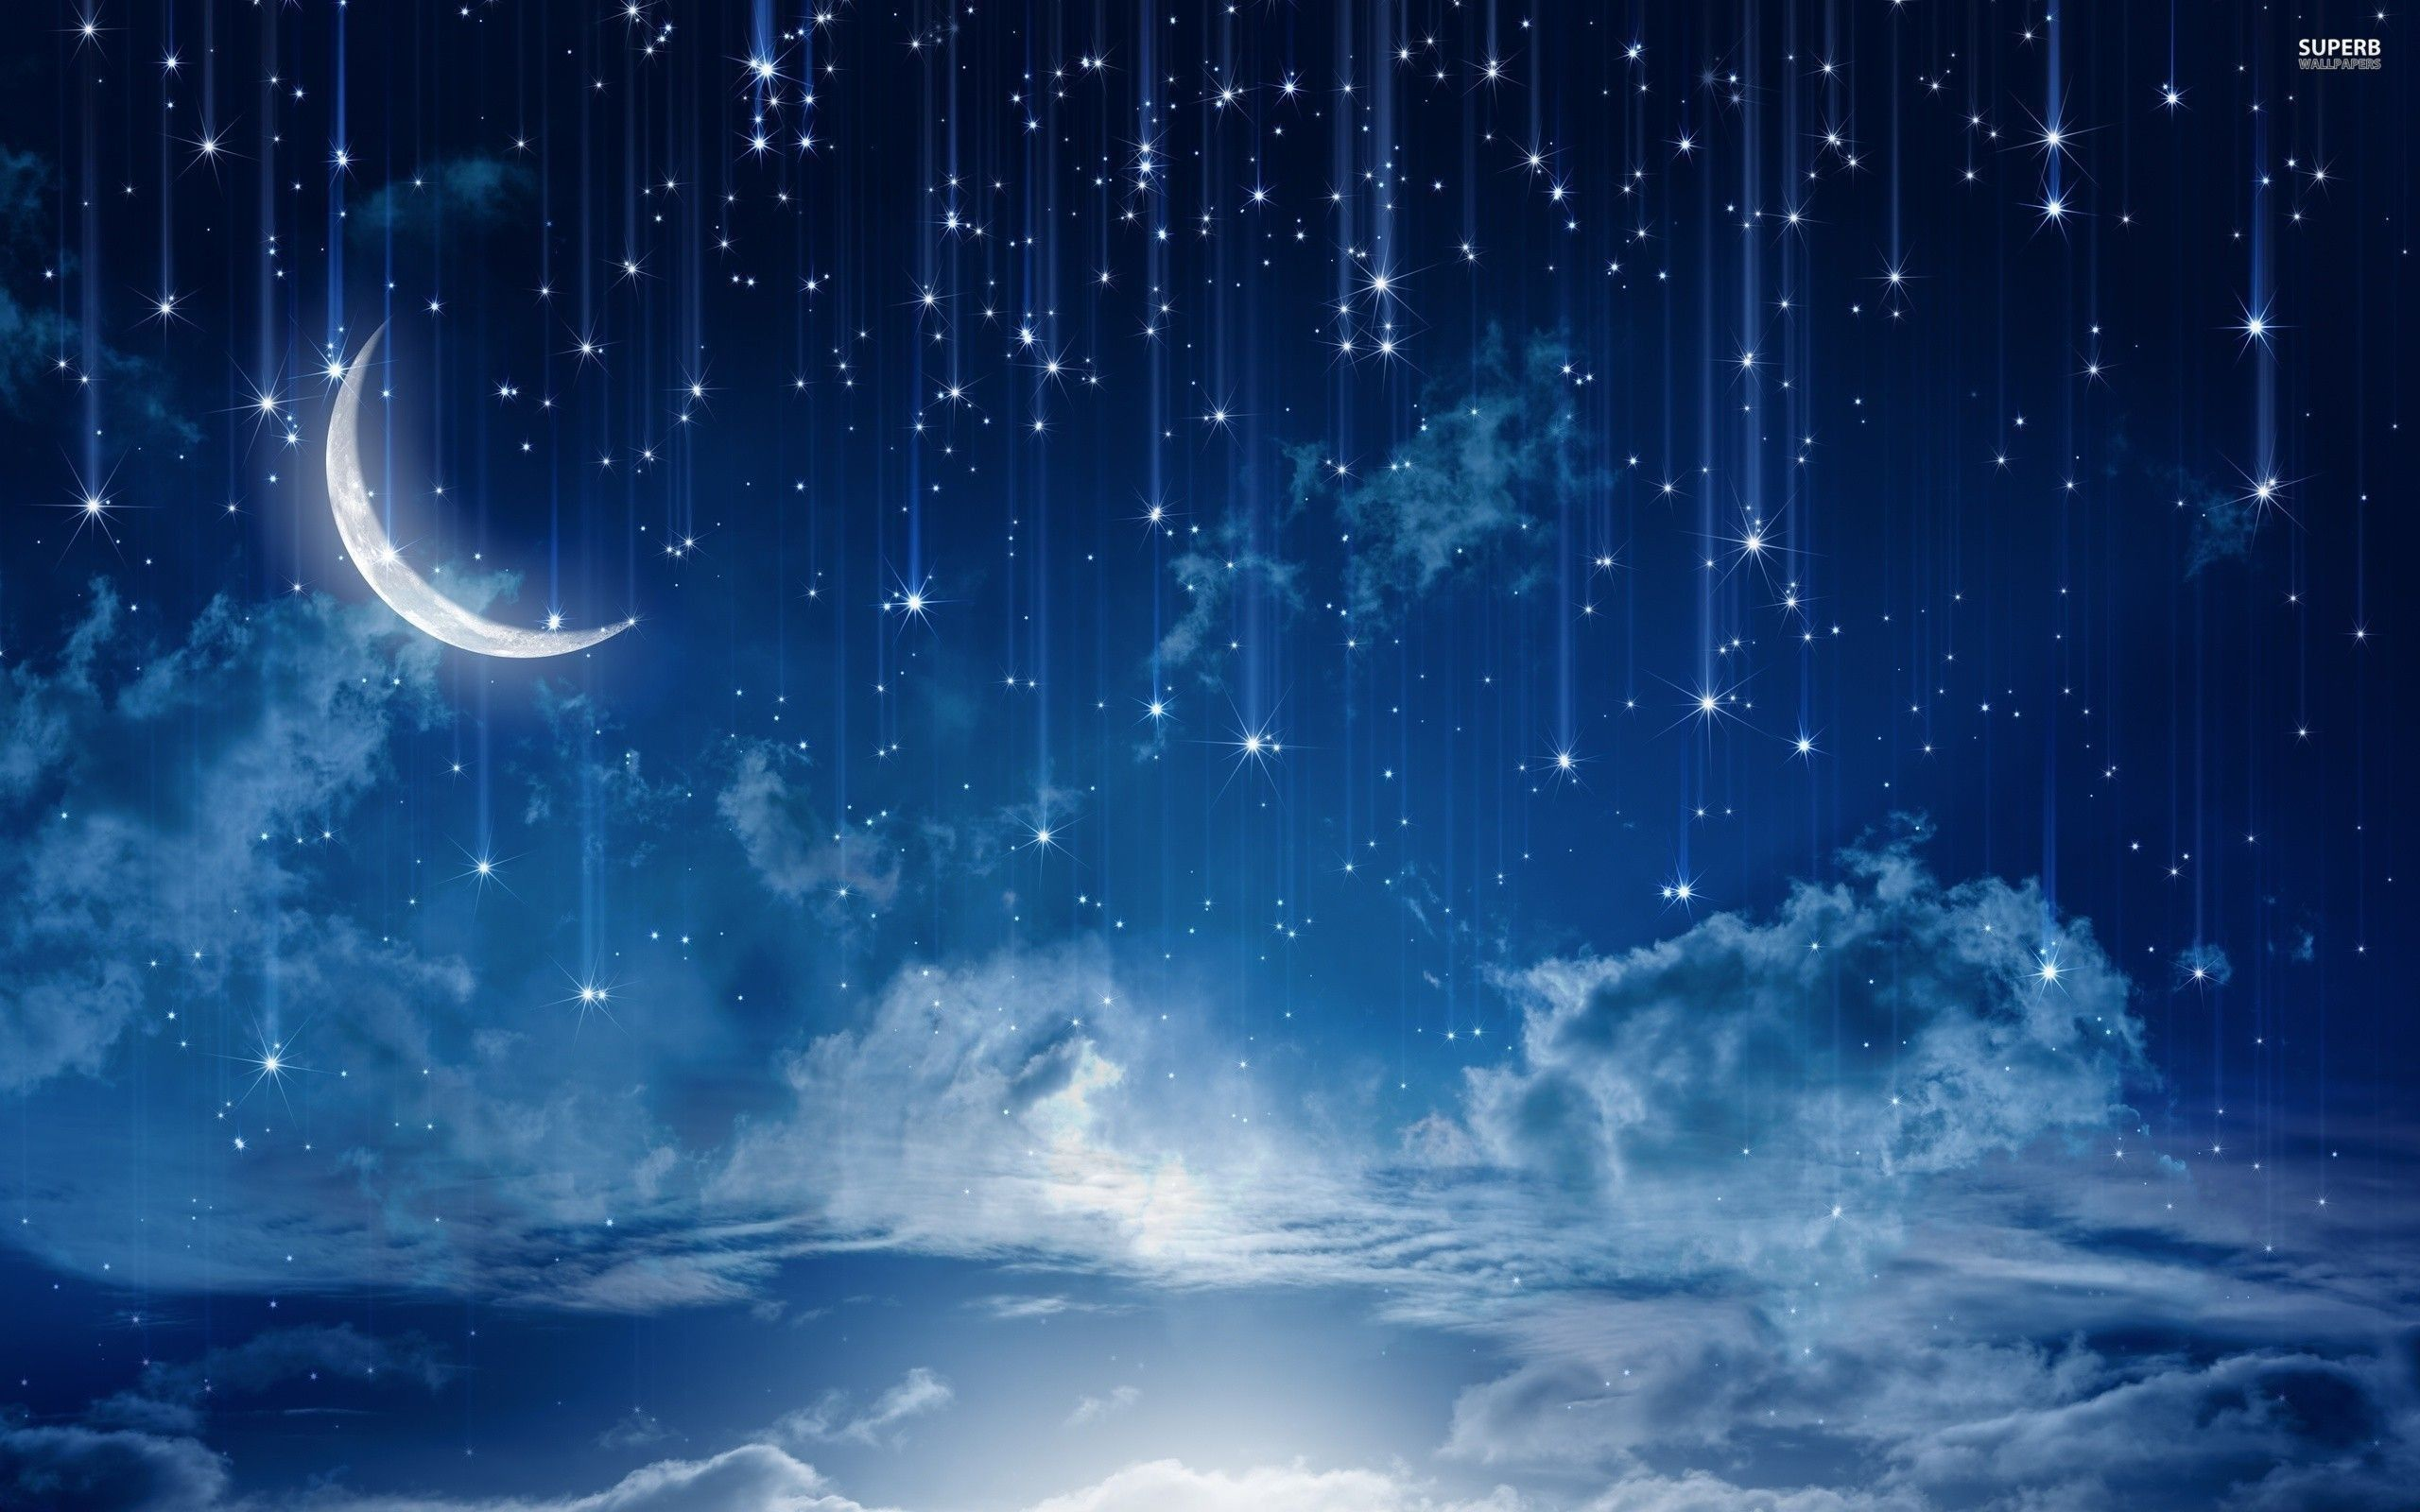 Sky Wallpapers: Starry Night Sky Wallpapers